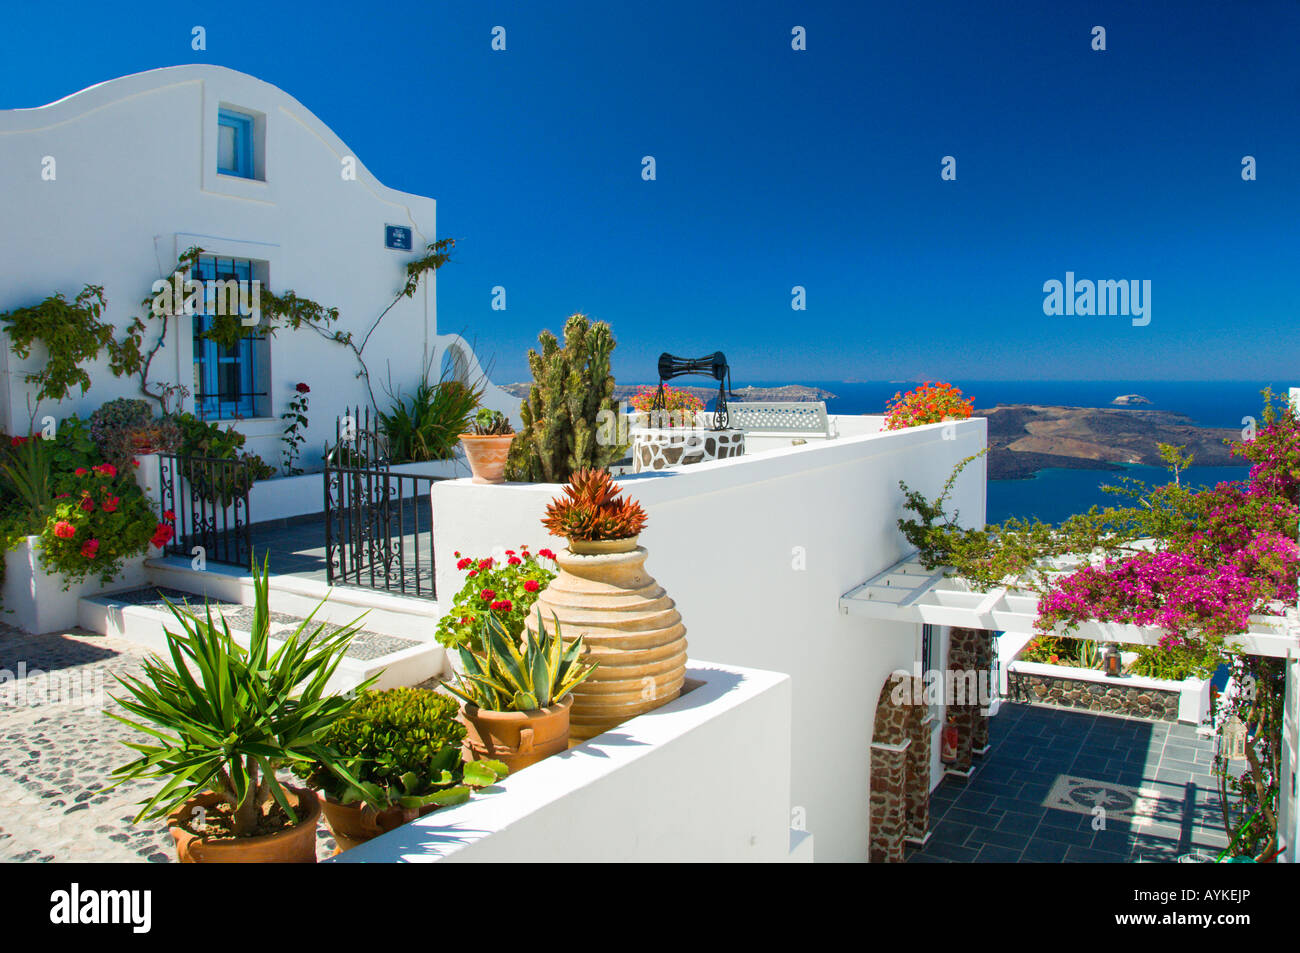 Apartment Patio And Pool Decor In The Village Of Fira On The Greek ...